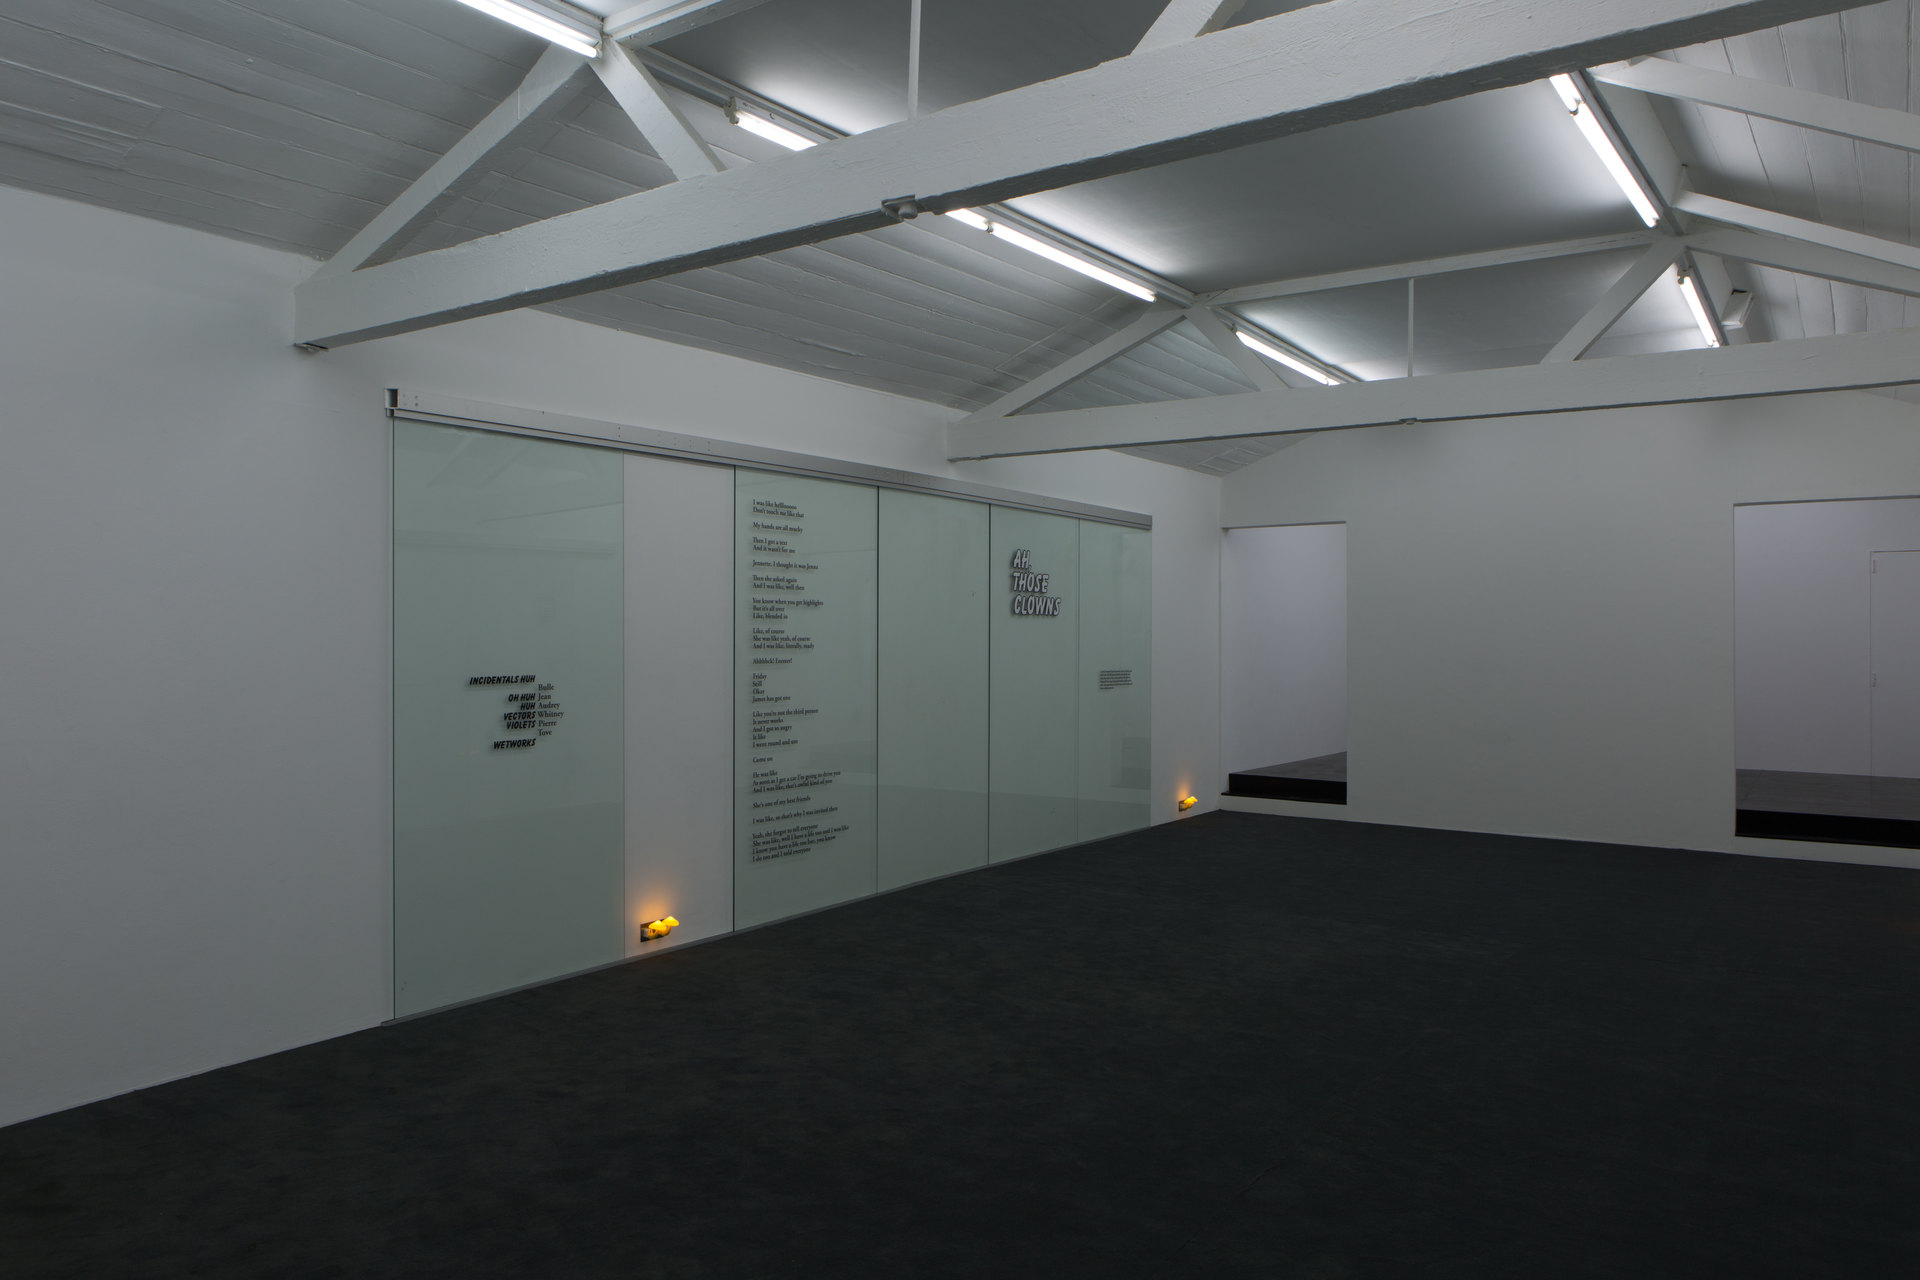 Name / Vectors / Lovers Writs / Sticks / Ours and Mine, 2016, Ghislaine Leung, Cell Project Space